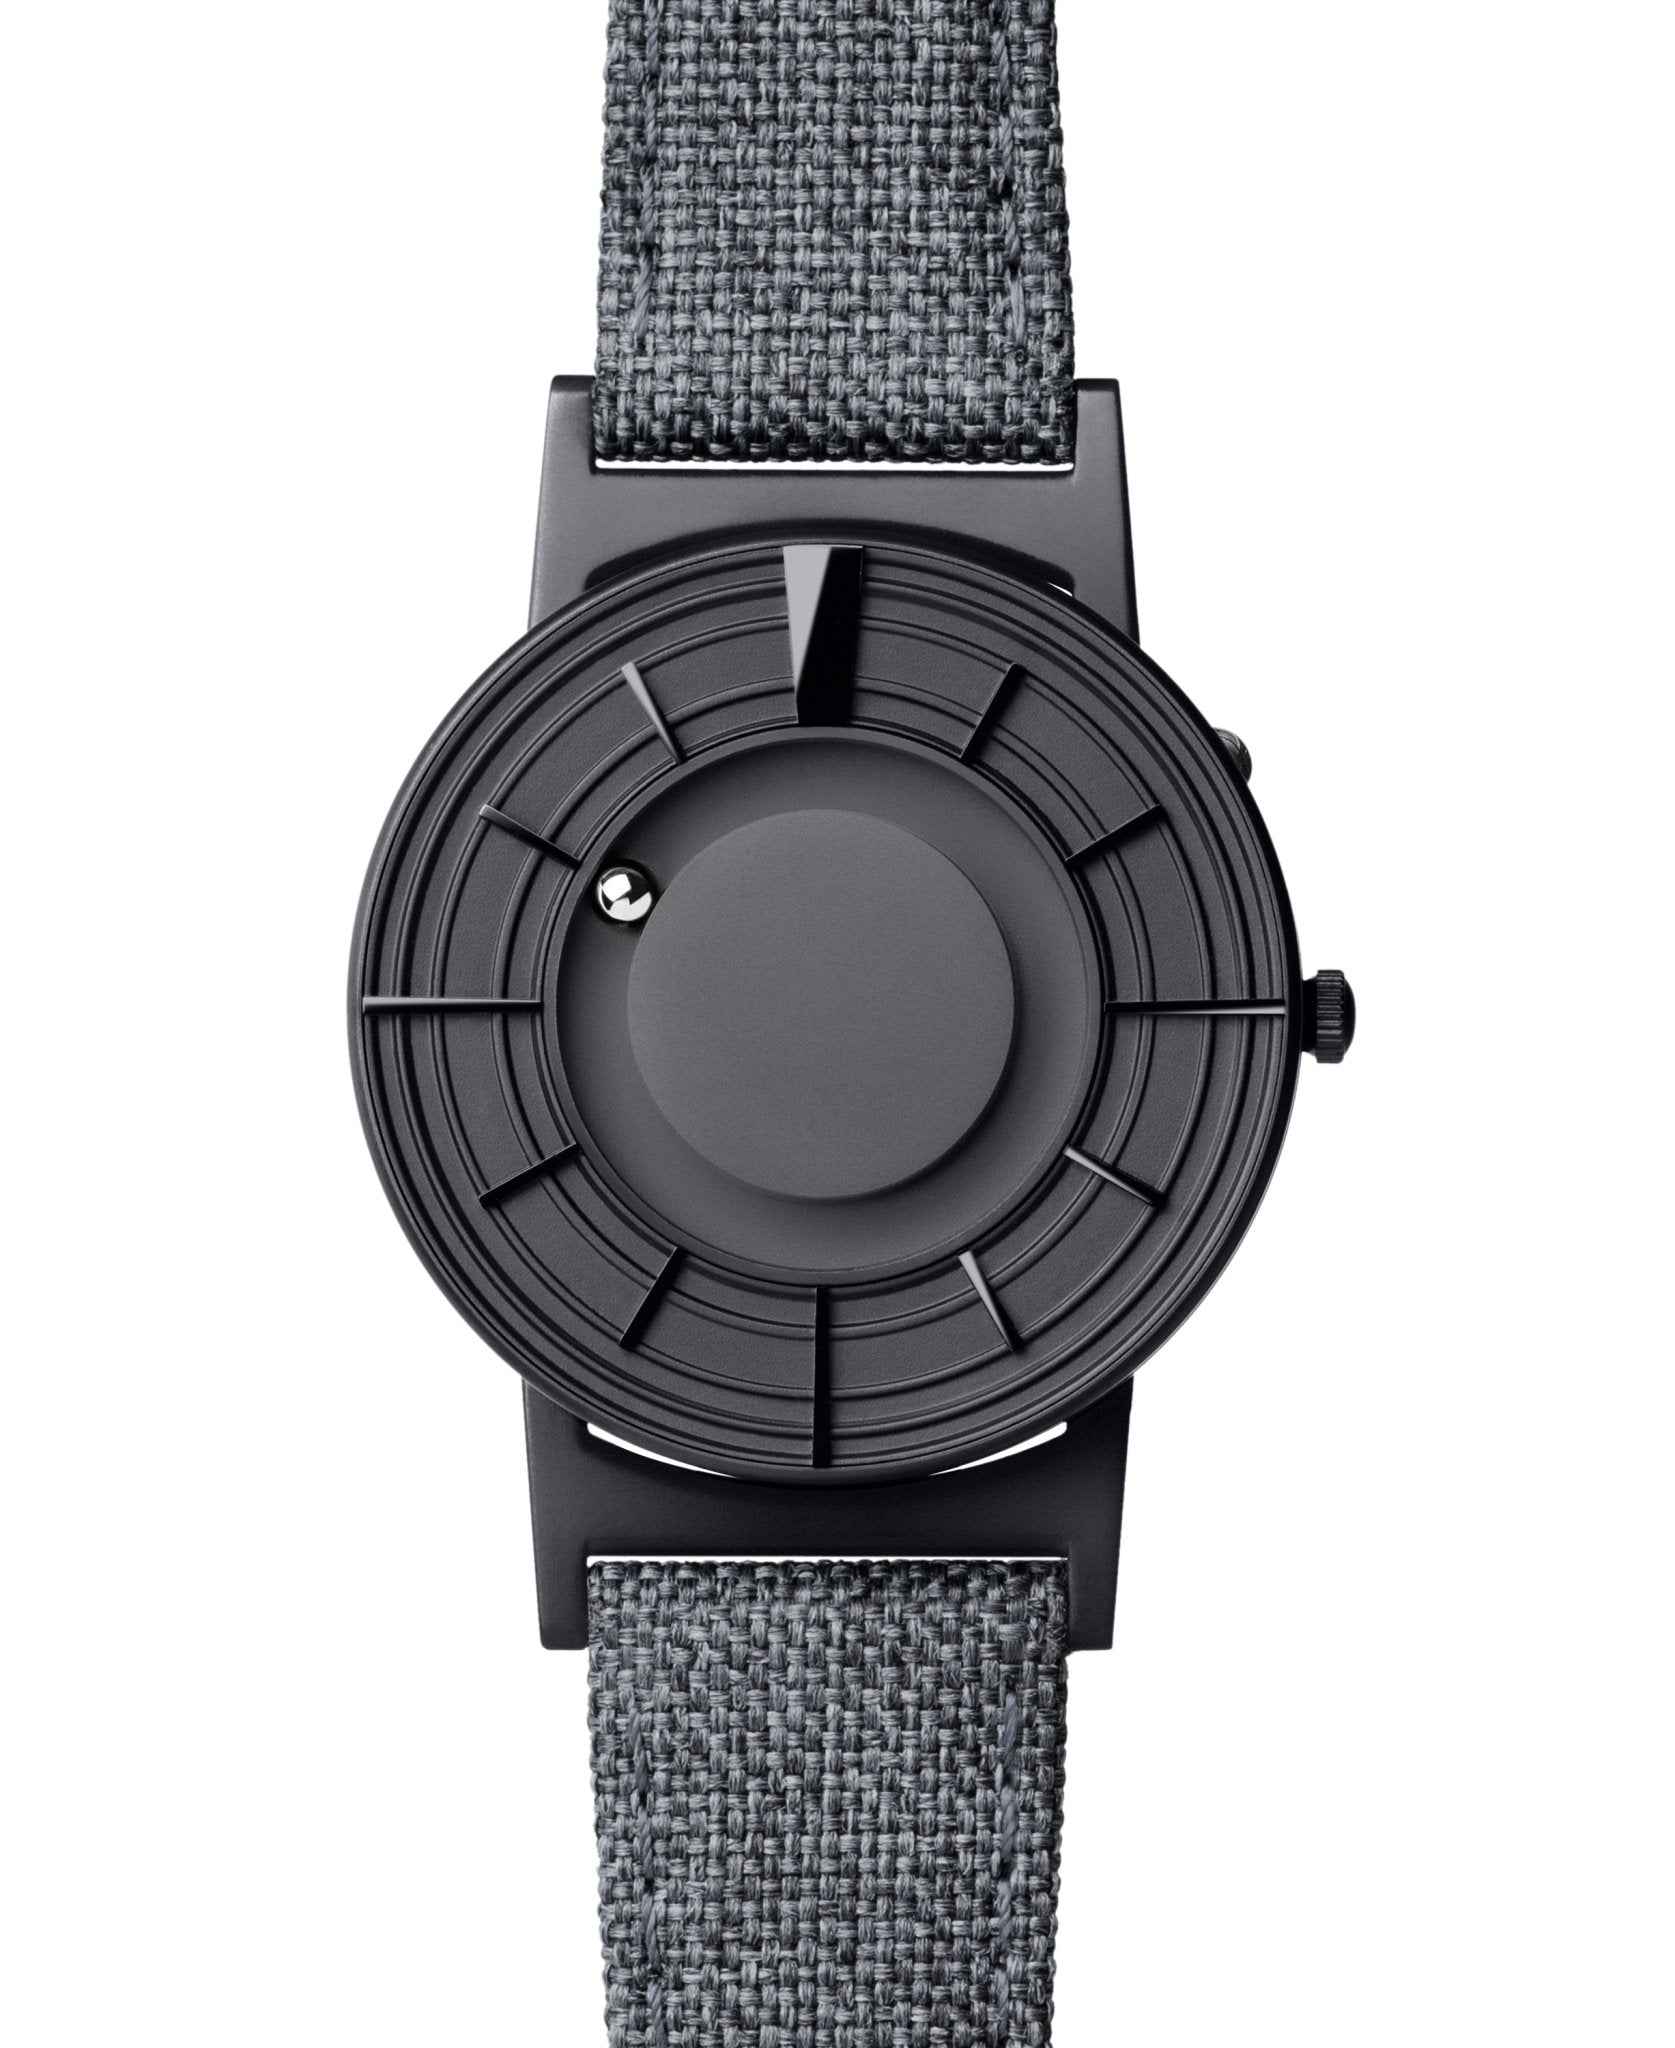 Eone Bradley Edge - Watches & Crystals